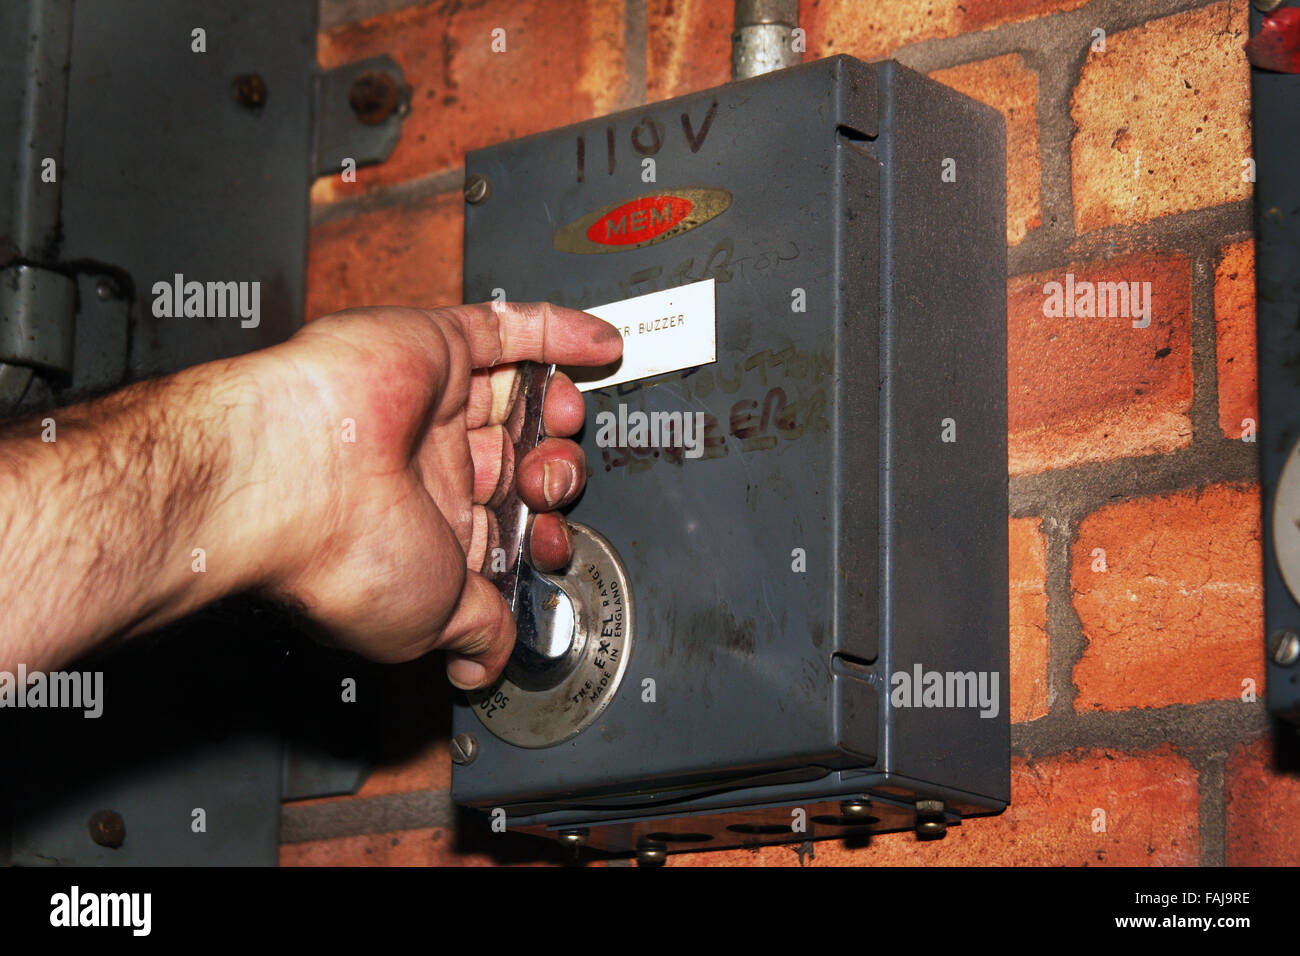 About to operate electrical isolation switch. - Stock Image